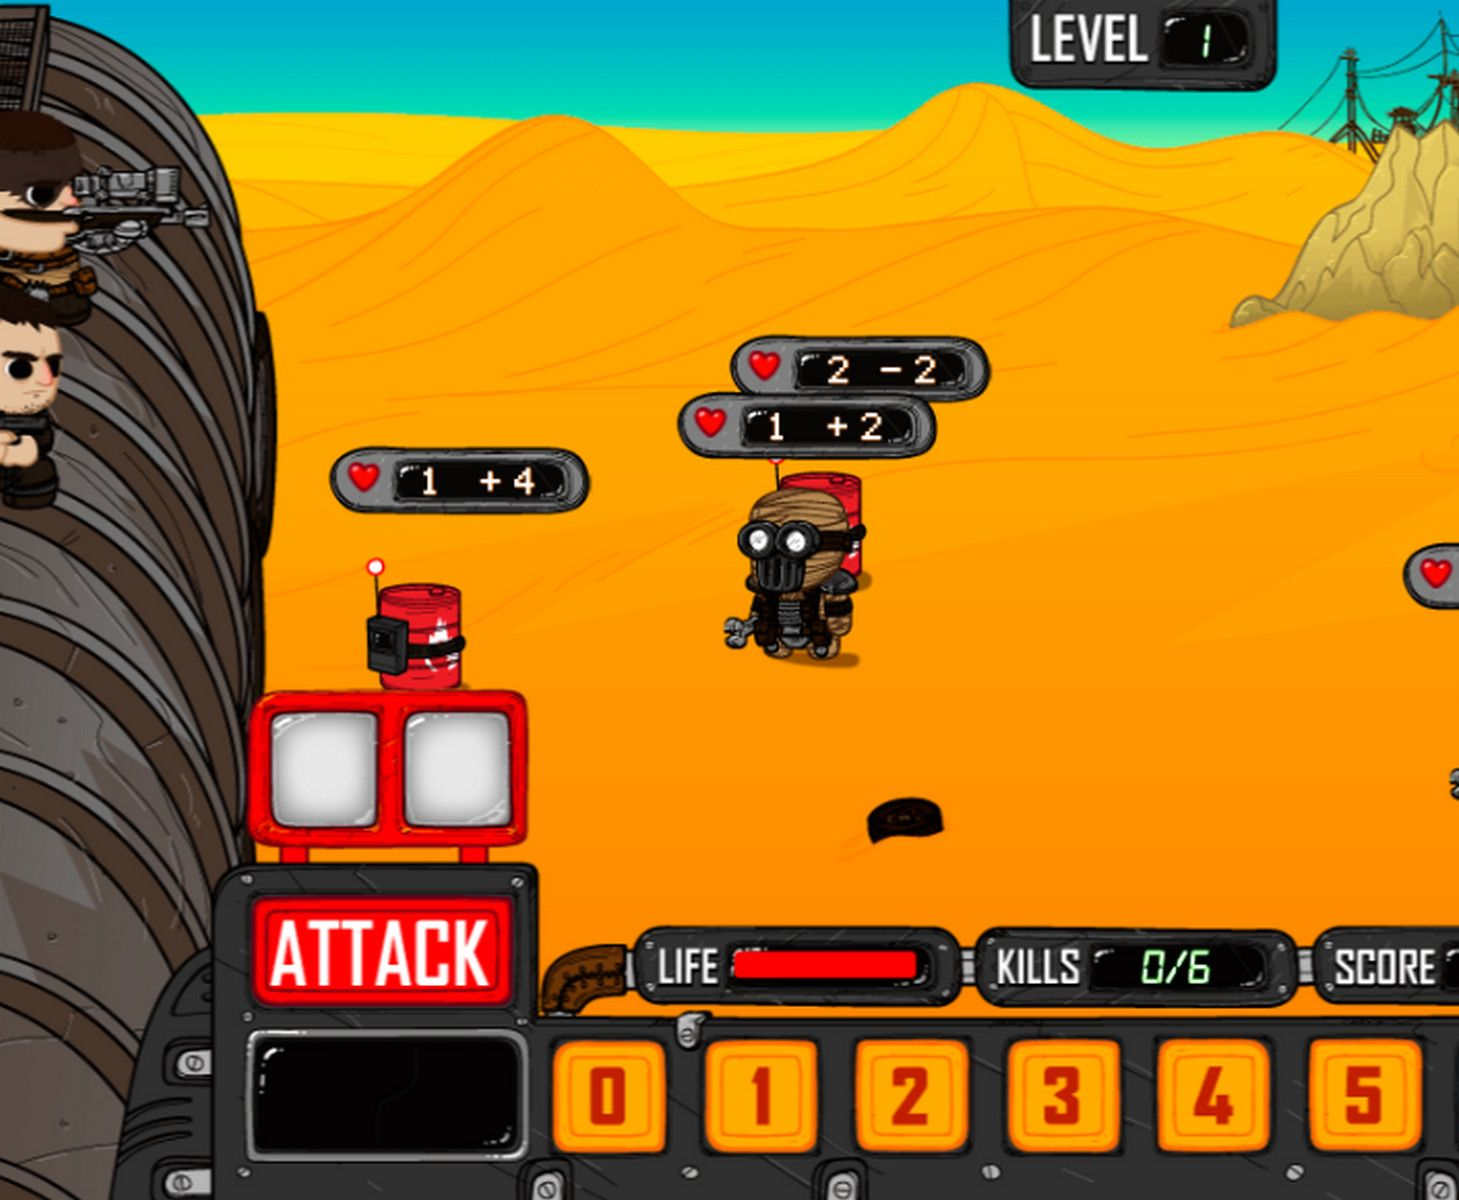 Games Like Stop the attack of foreign soldiers. Answer the